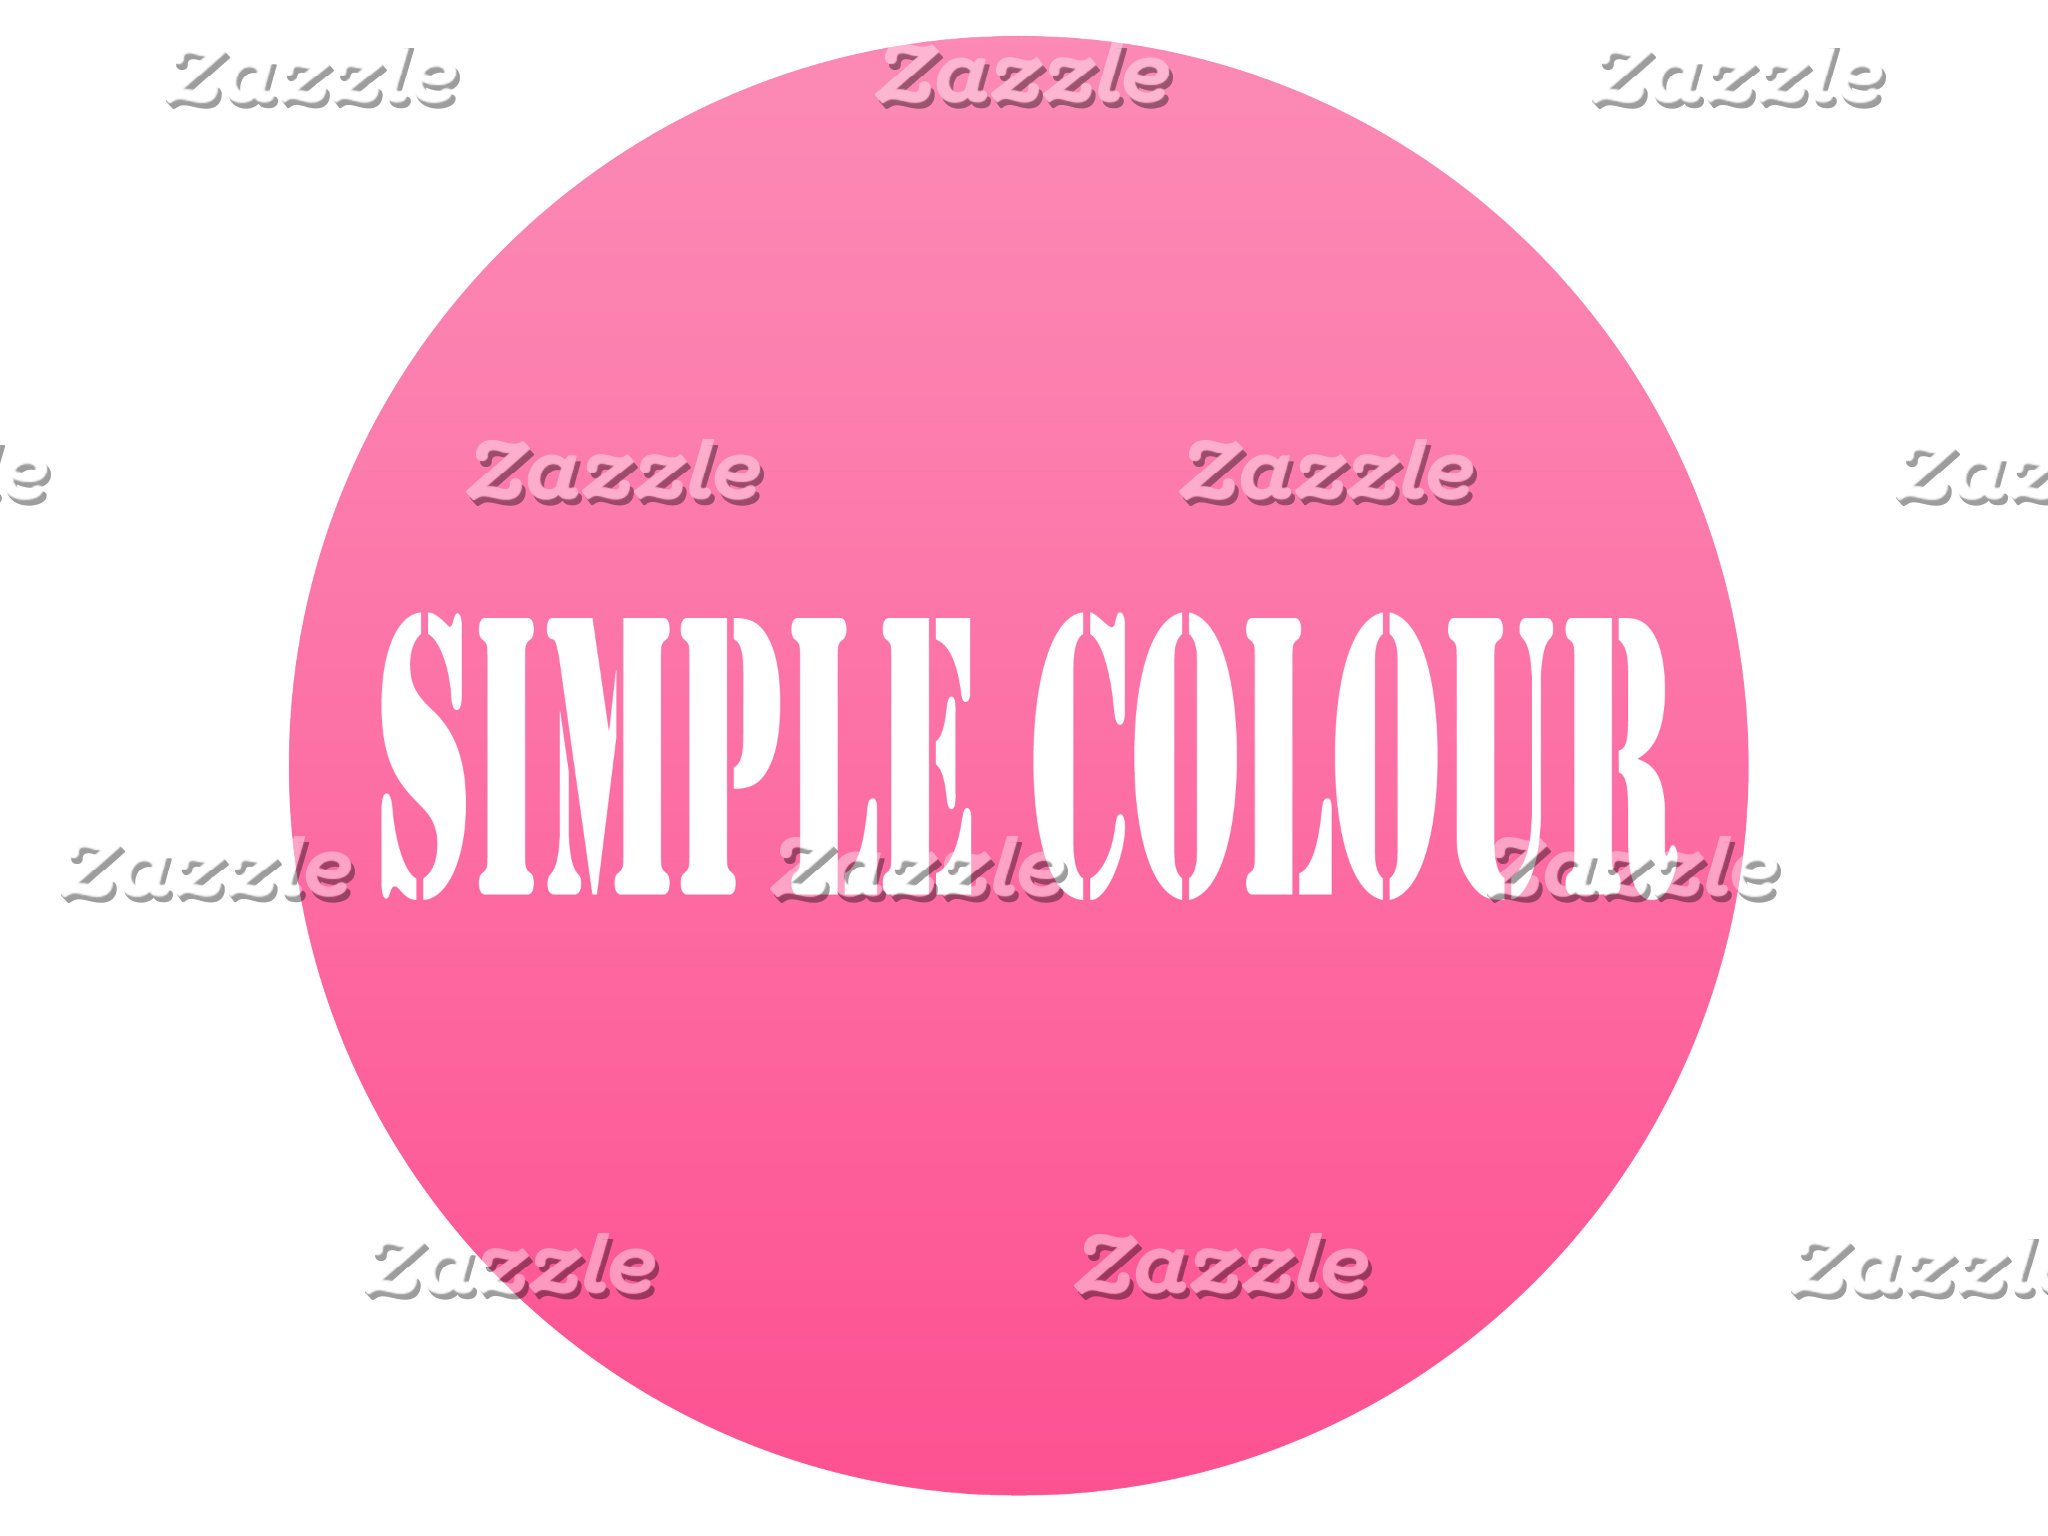 Simple colour